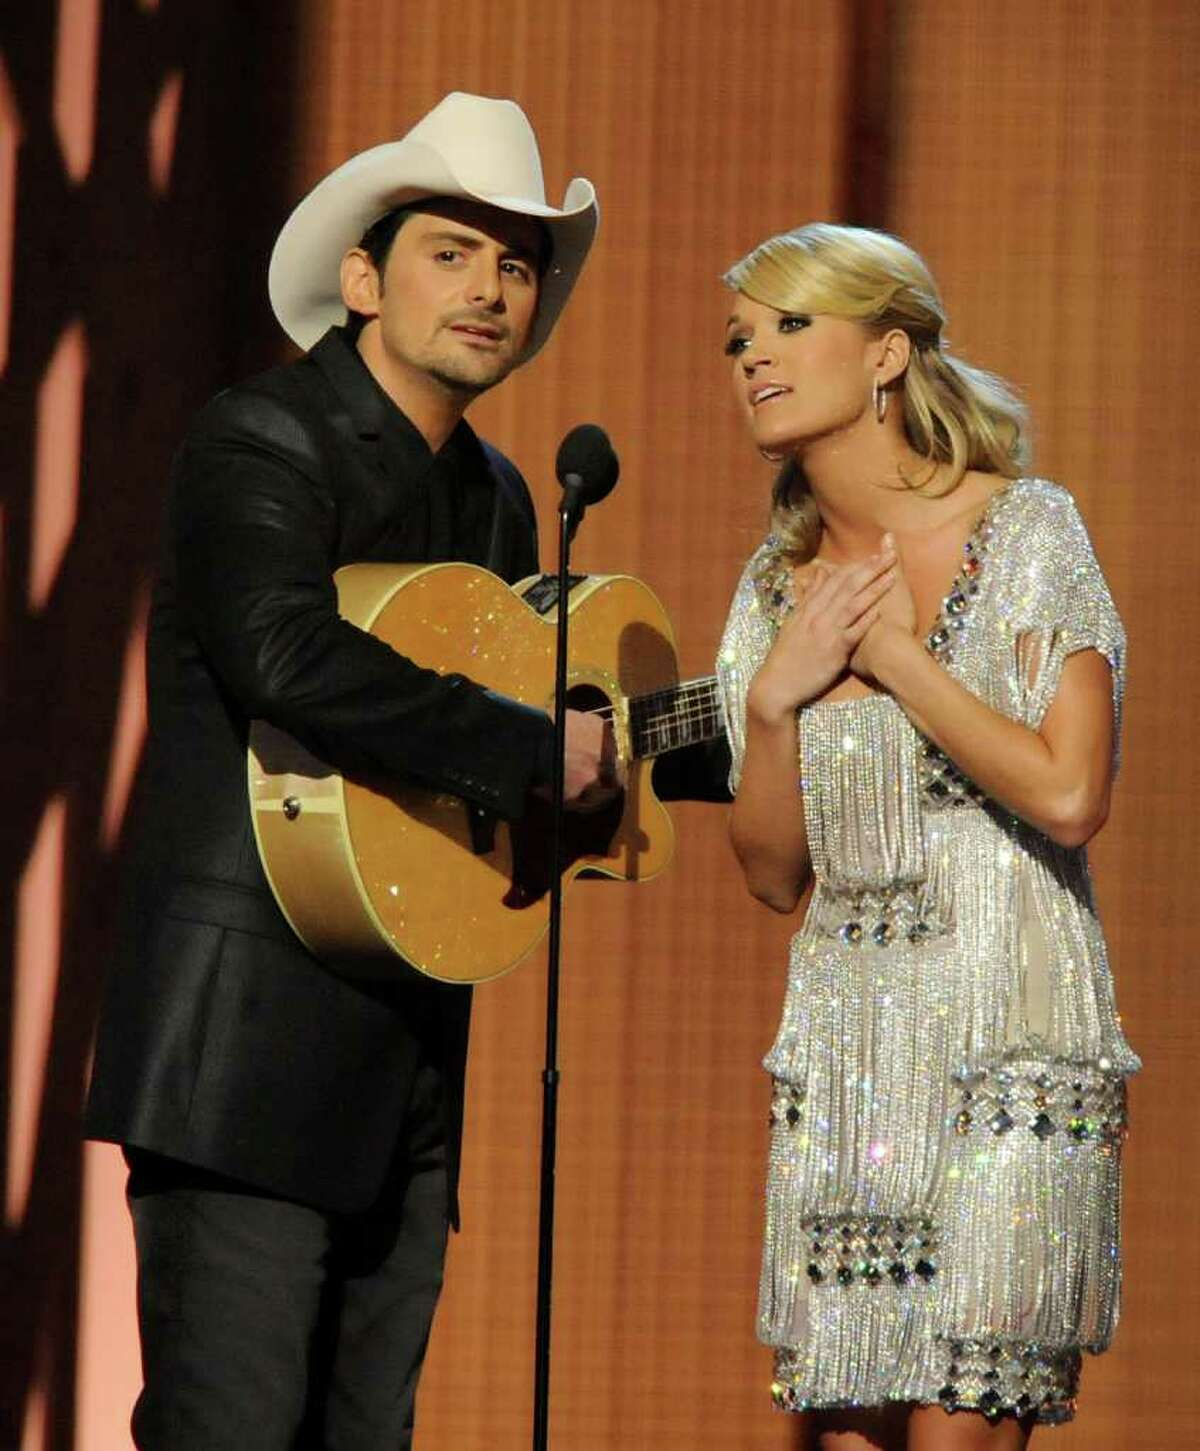 Carrie and Brad to host CMA Awards a 4th timeNASHVILLE, Tenn. (AP) -- Carrie Underwood and Brad Paisley will be back together again in November.They've been picked to host the Country Music Association Awards for a fourth straight year. The 45th annual awards will be aired live Nov. 9 from Nashville's Bridgestone Arena on ABC.Paisley is the reigning CMA entertainer of the year. Paisley and Underwood have won 19 CMA awards between them.As Paisley notes in a news release announcing their return, they've achieved a comic chemistry over the years with Underwood's class balancing